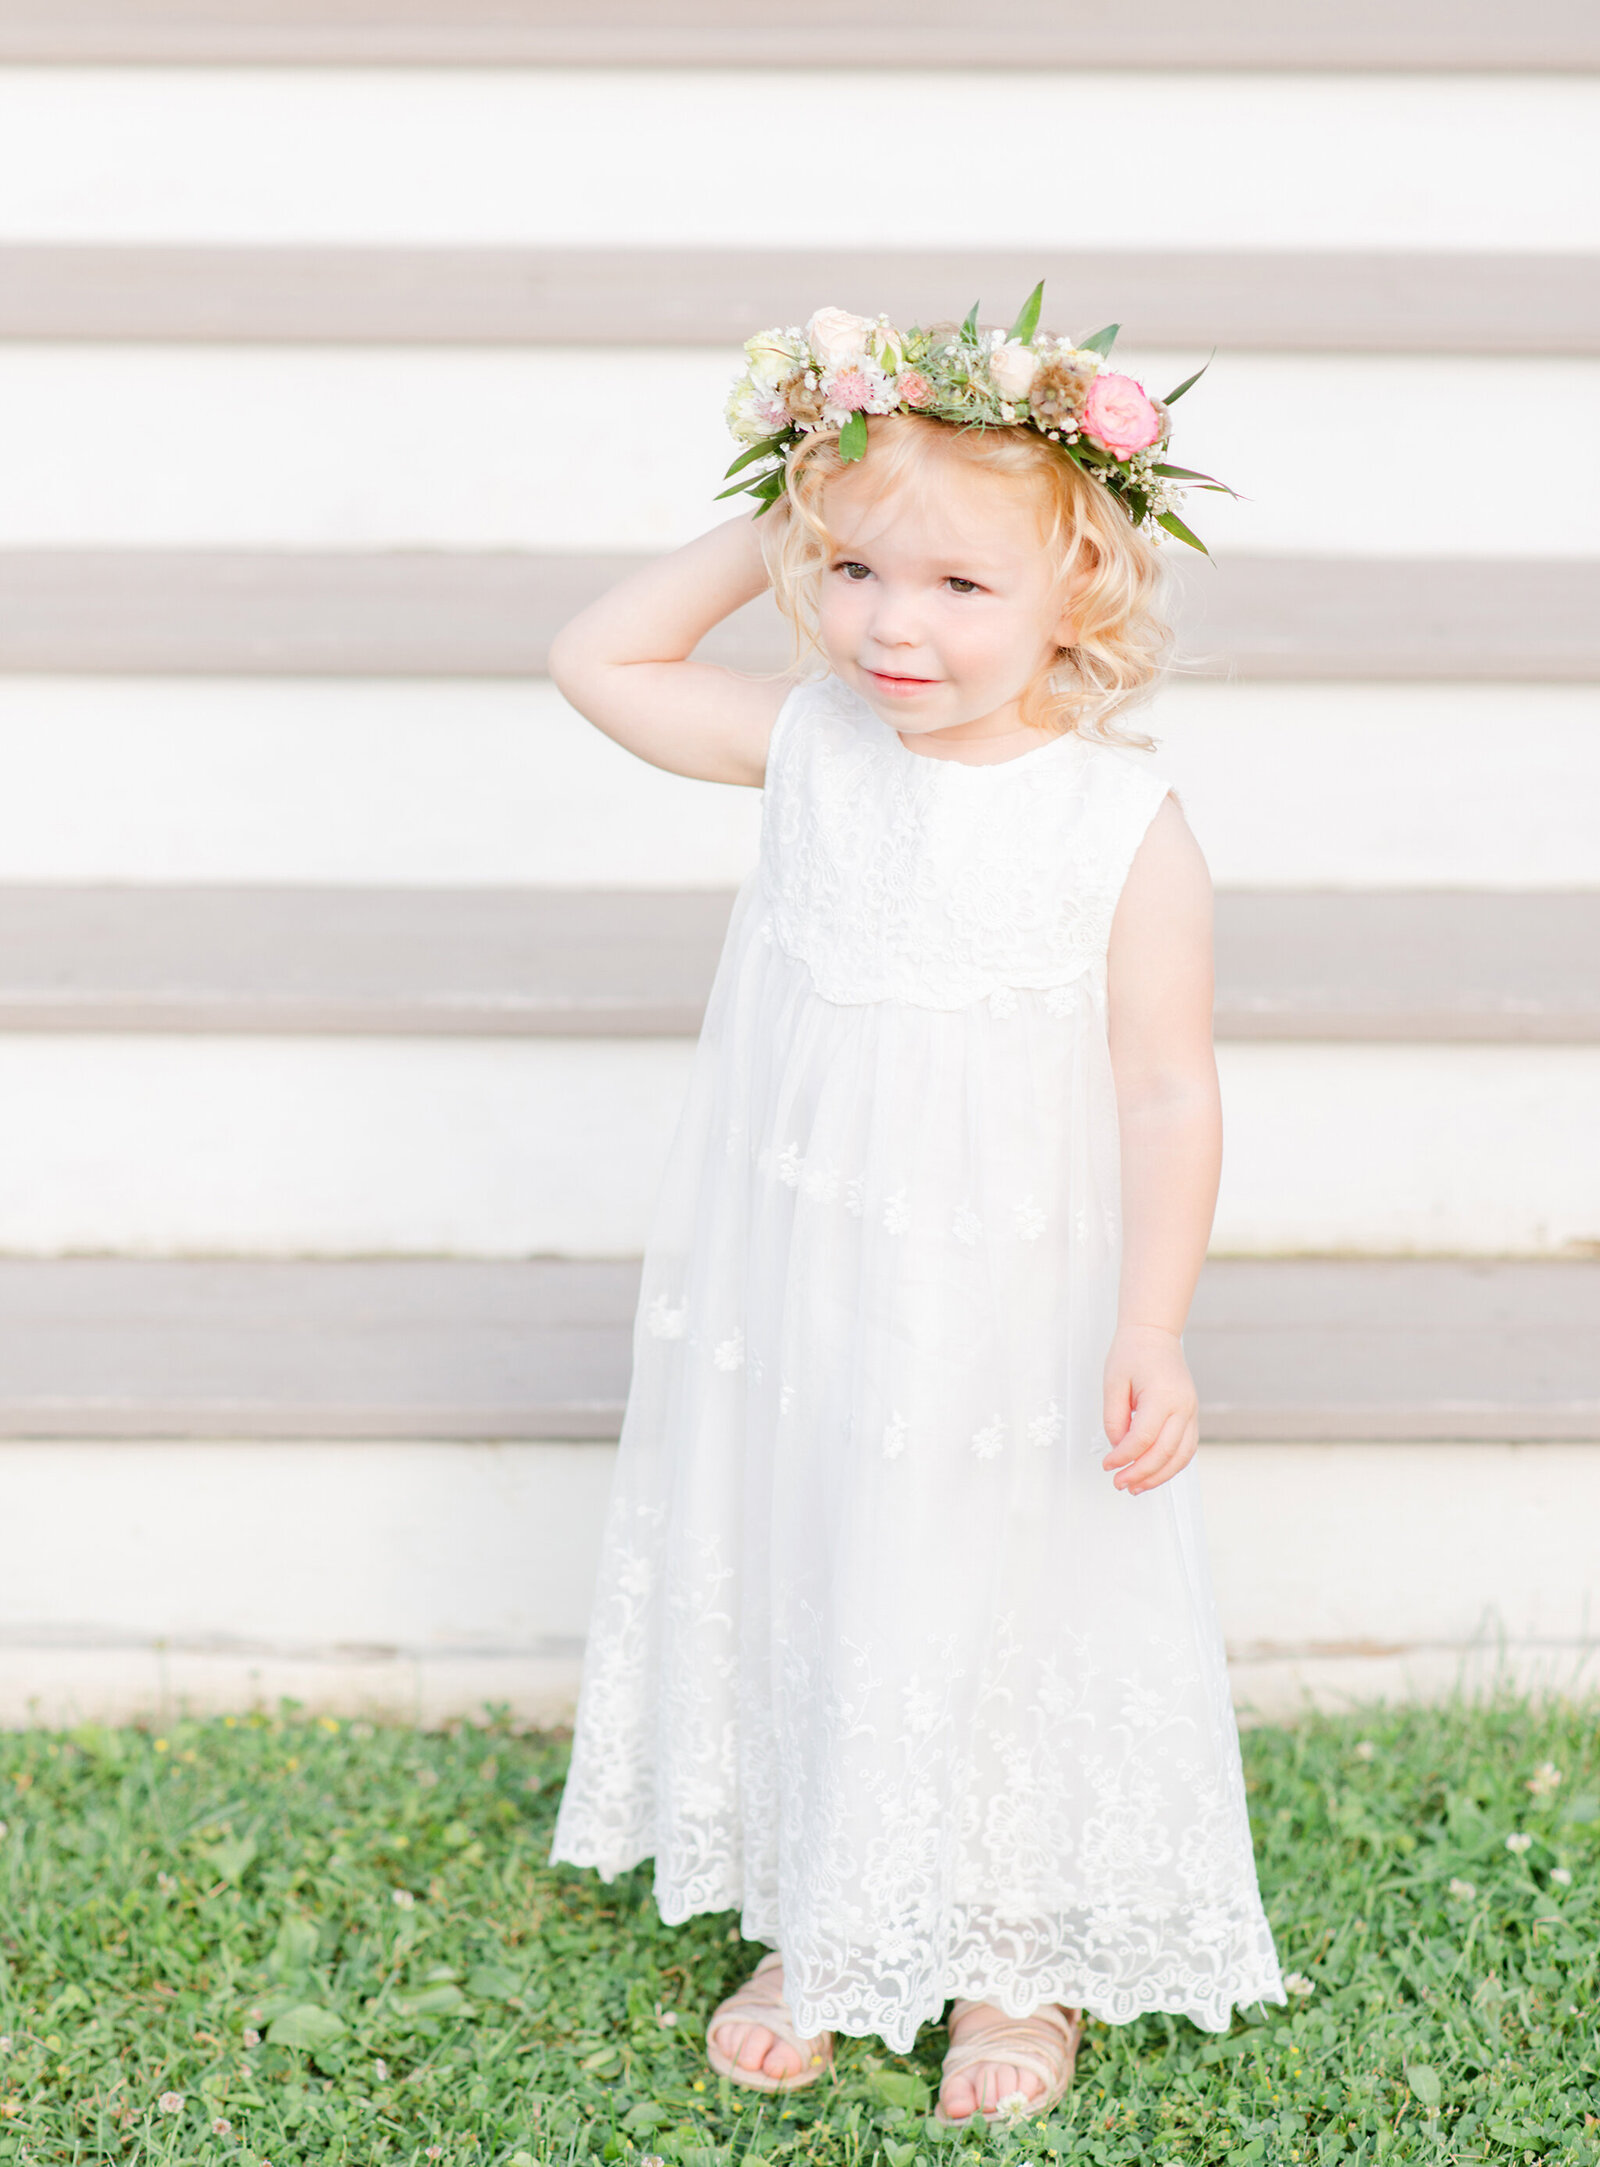 Little girl with floral crown and white dress smiling